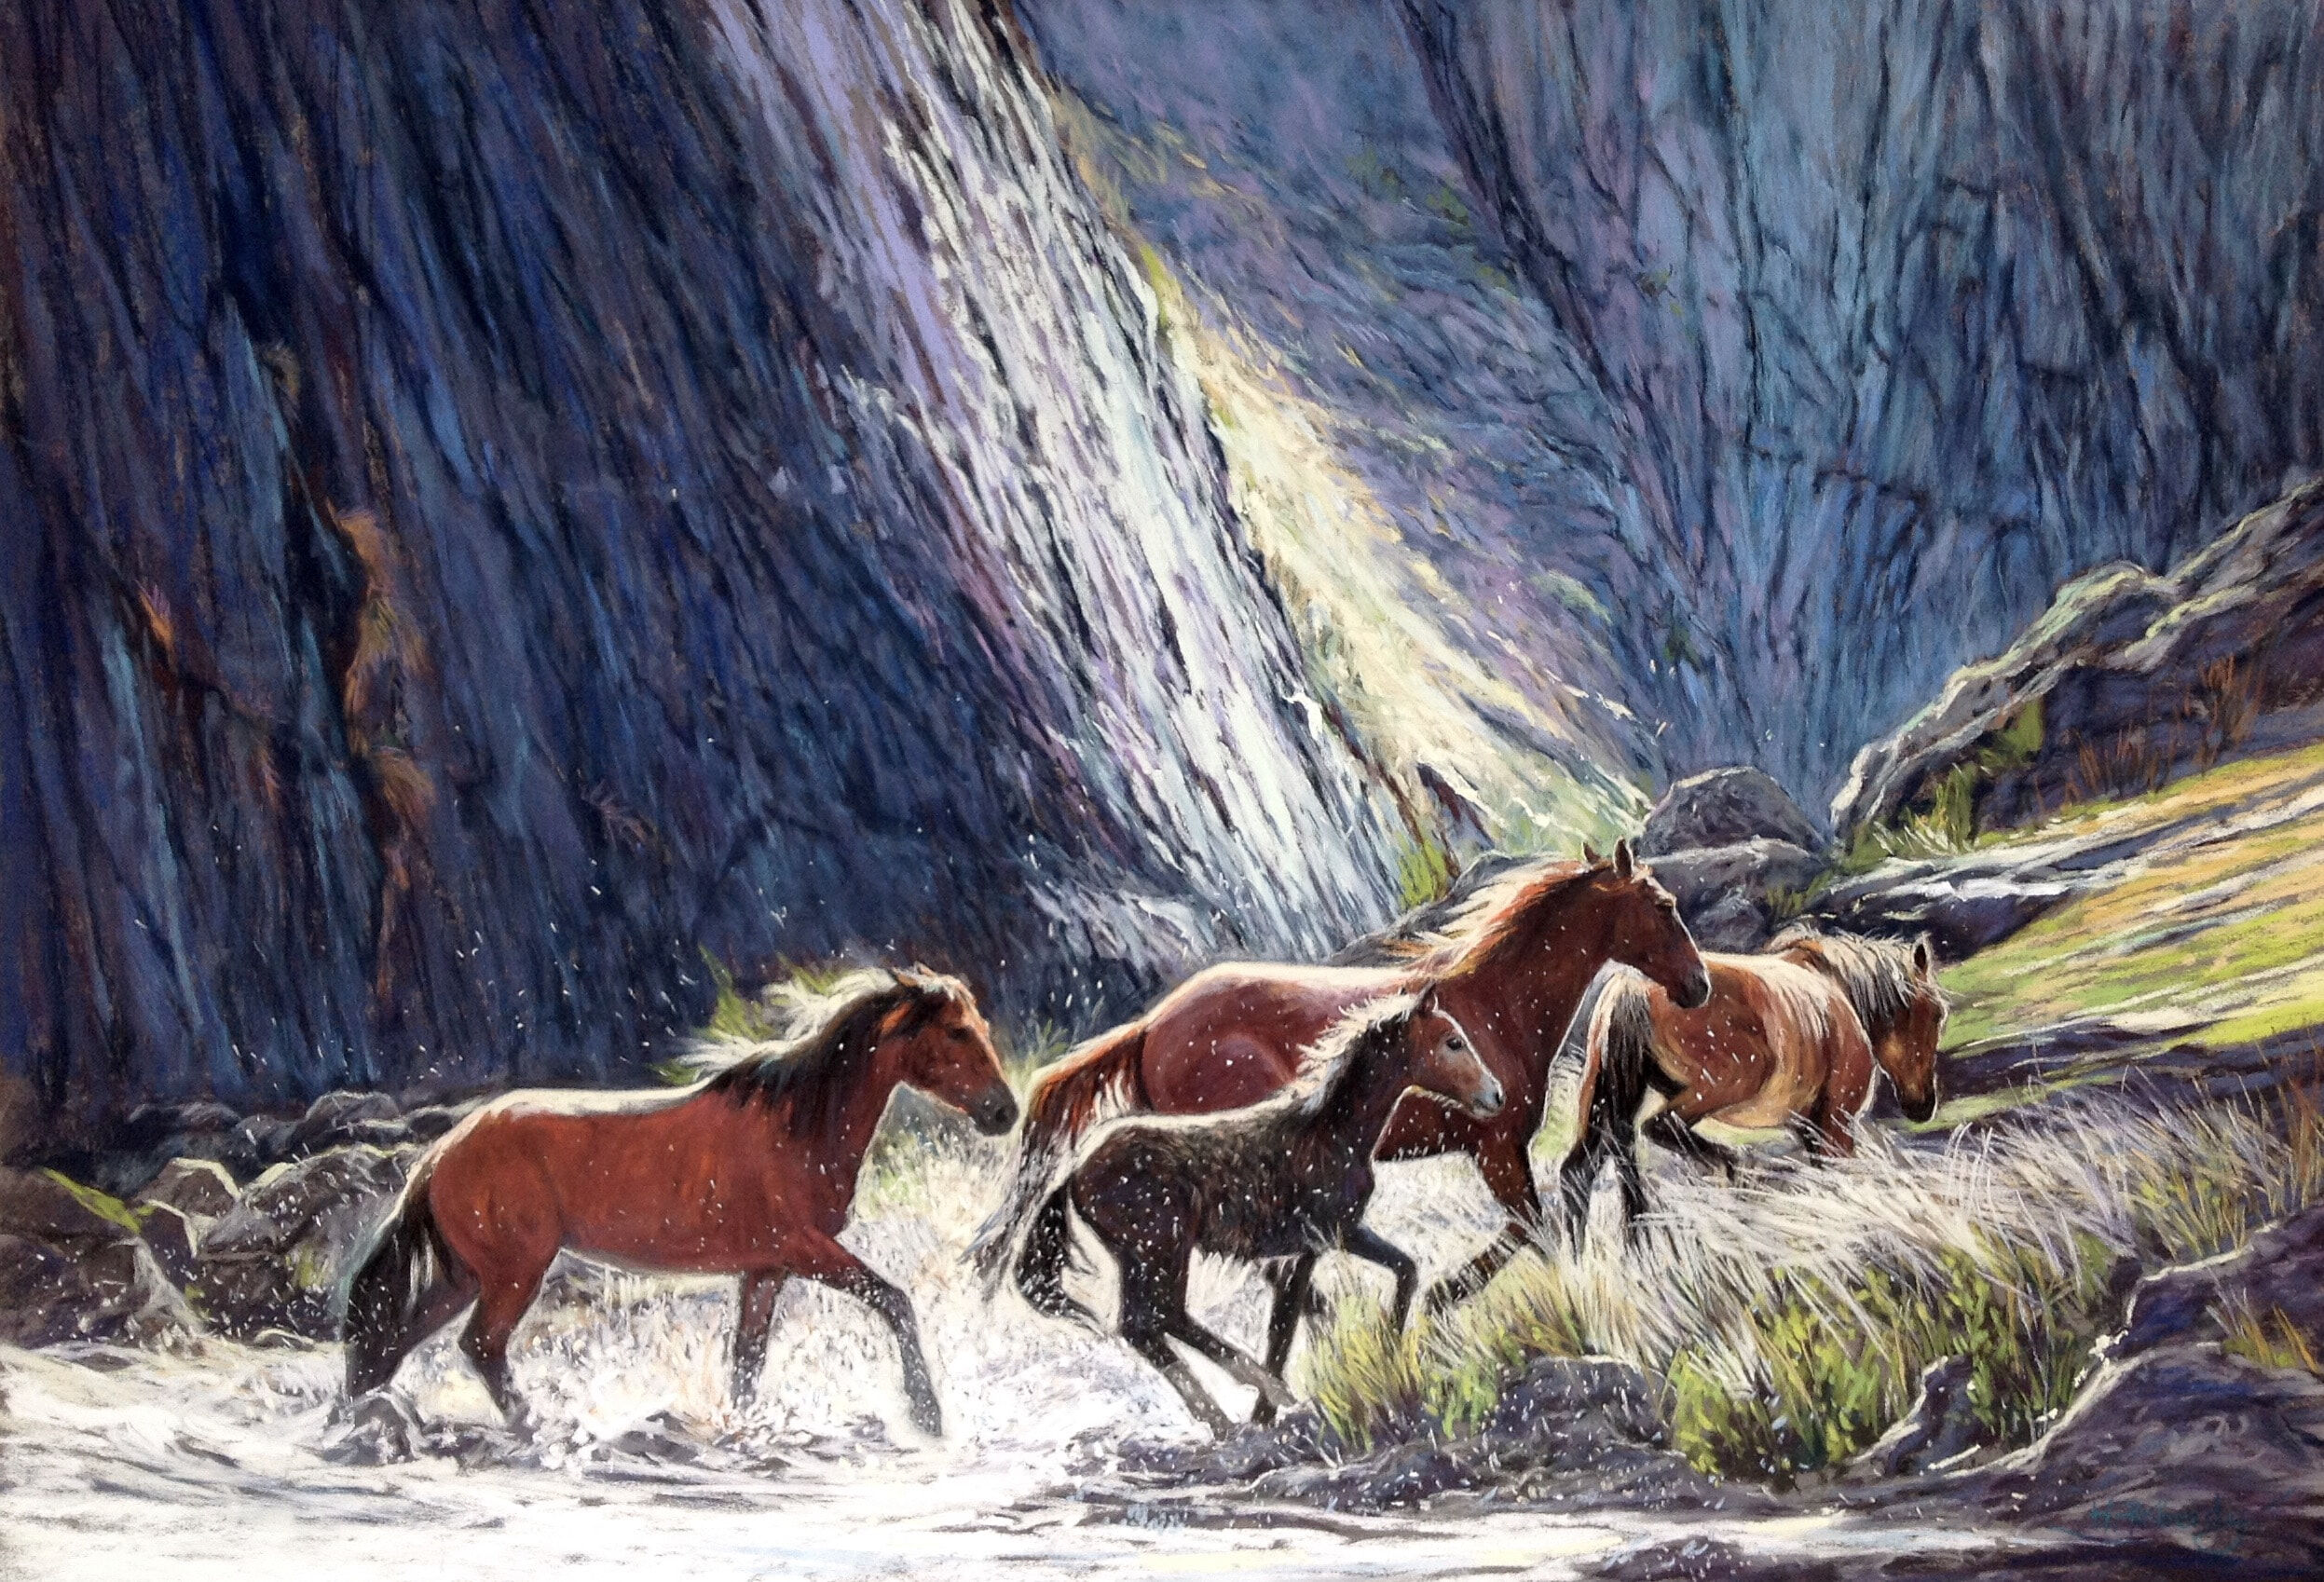 22A_Heather Peberdy_The brumbies take flight_Pastel